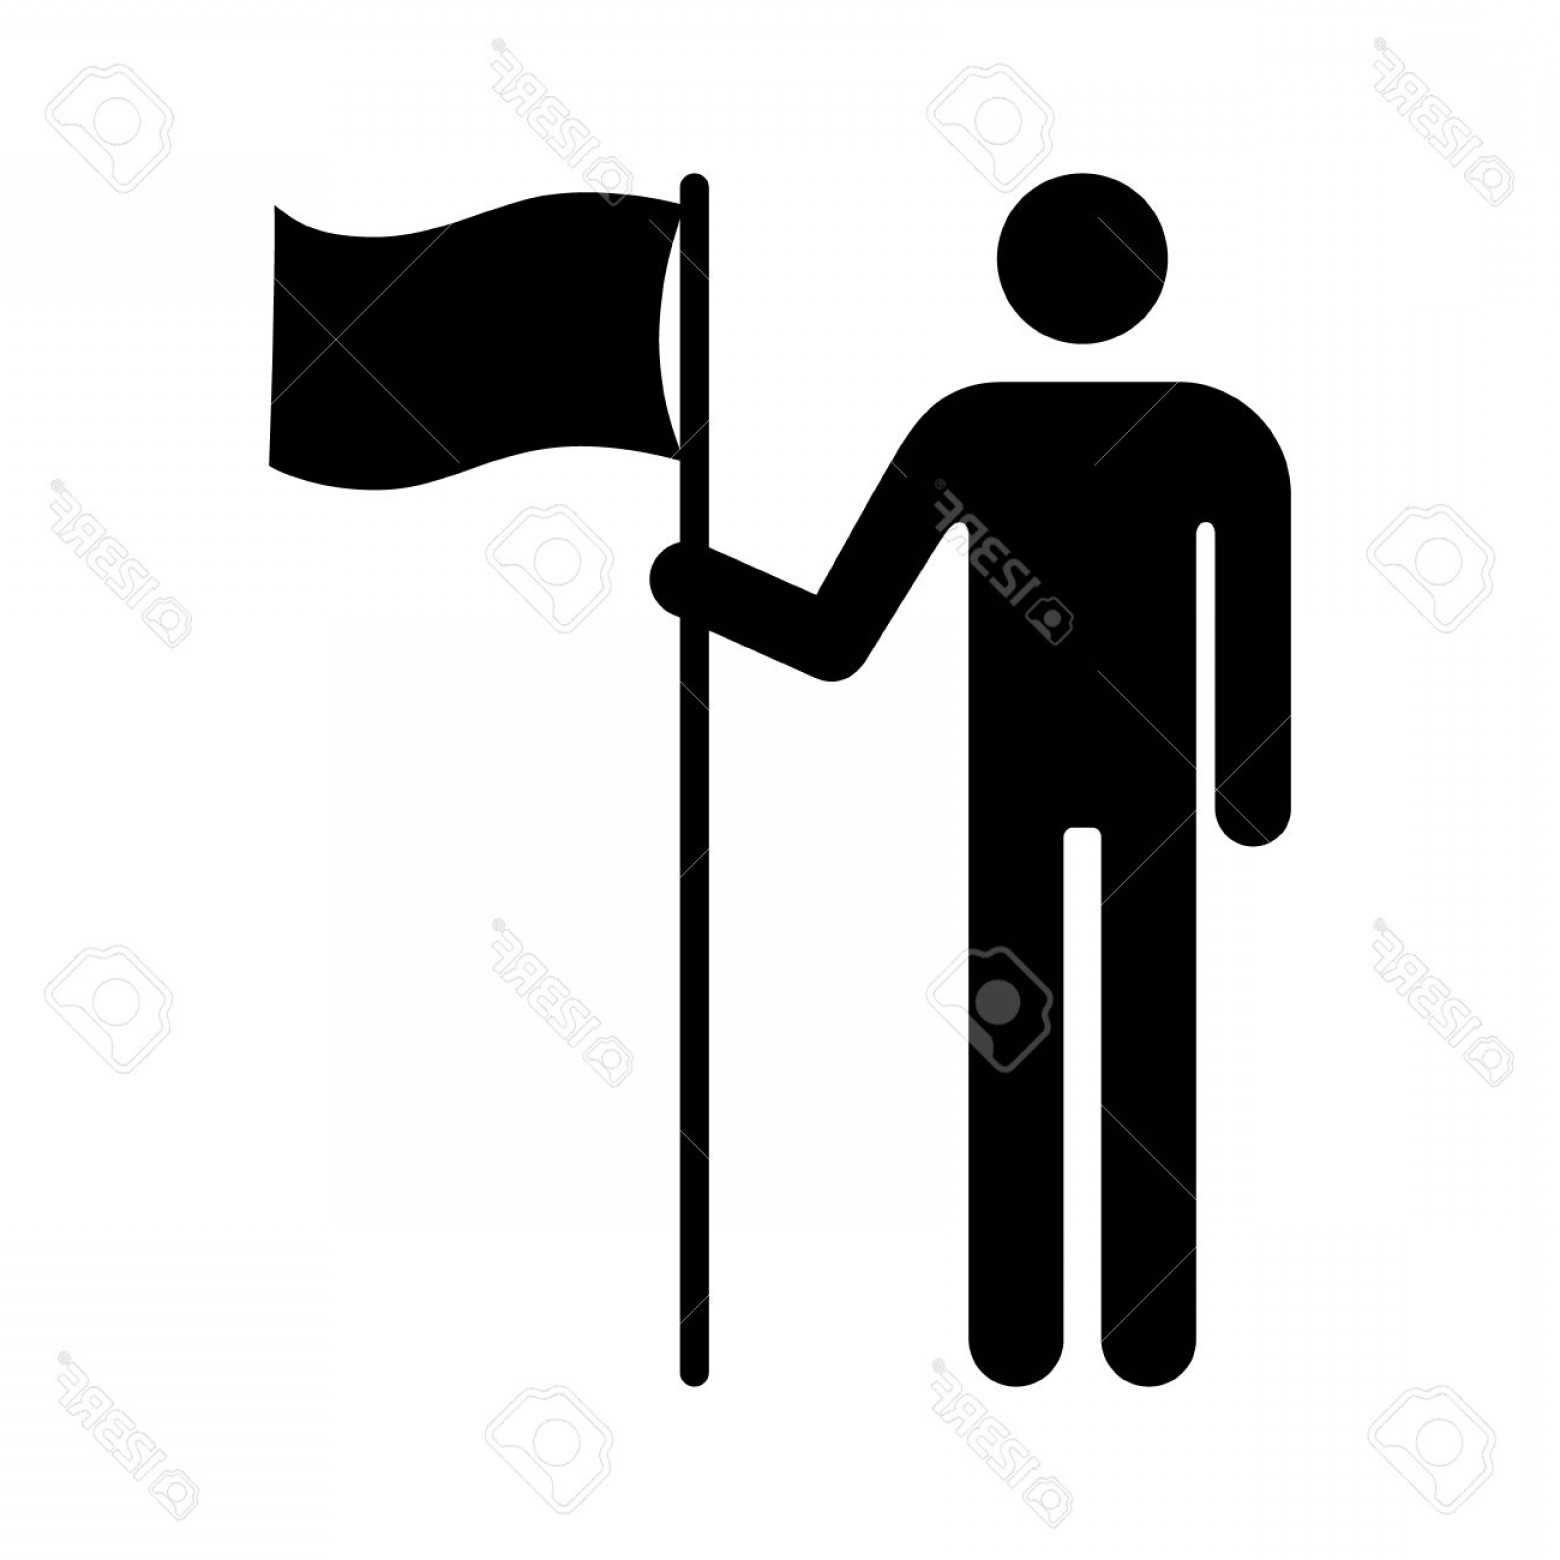 Vector Person Holding: Photostock Vector Man Holding Flag Or Person Holding Flag Flat Icon For Apps And Websites